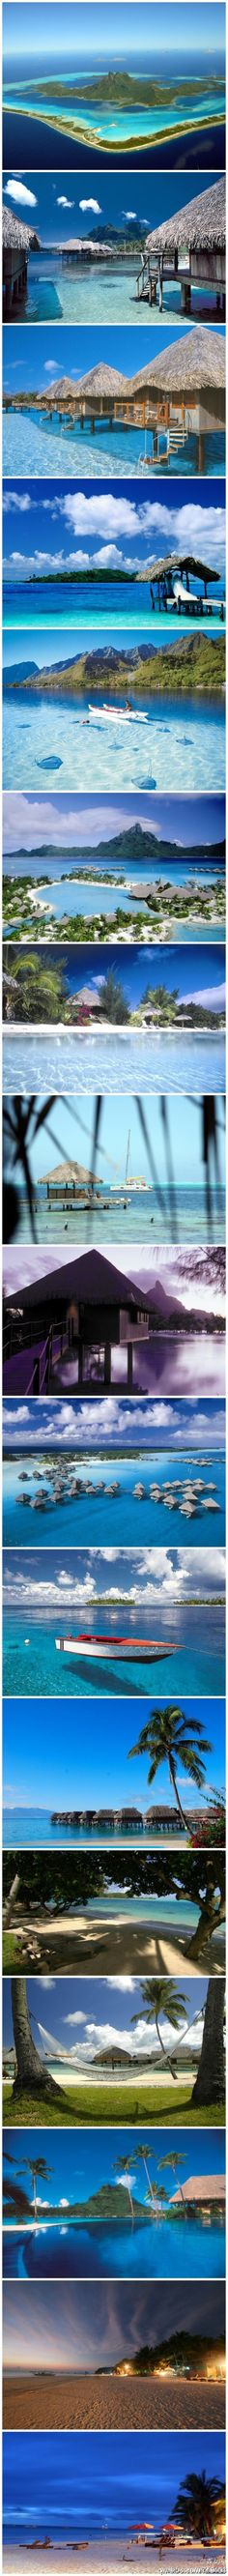 The Best Shots of Bora Bora Tahiti,it is easy to go there from USA.amazing place for your honeymoon,Only heaven could be as beautiful! Vacation Places, Dream Vacations, Places To Travel, Places To See, Travel Destinations, Holiday Destinations, Dream Vacation Spots, Honeymoon Spots, Honeymoon Ideas